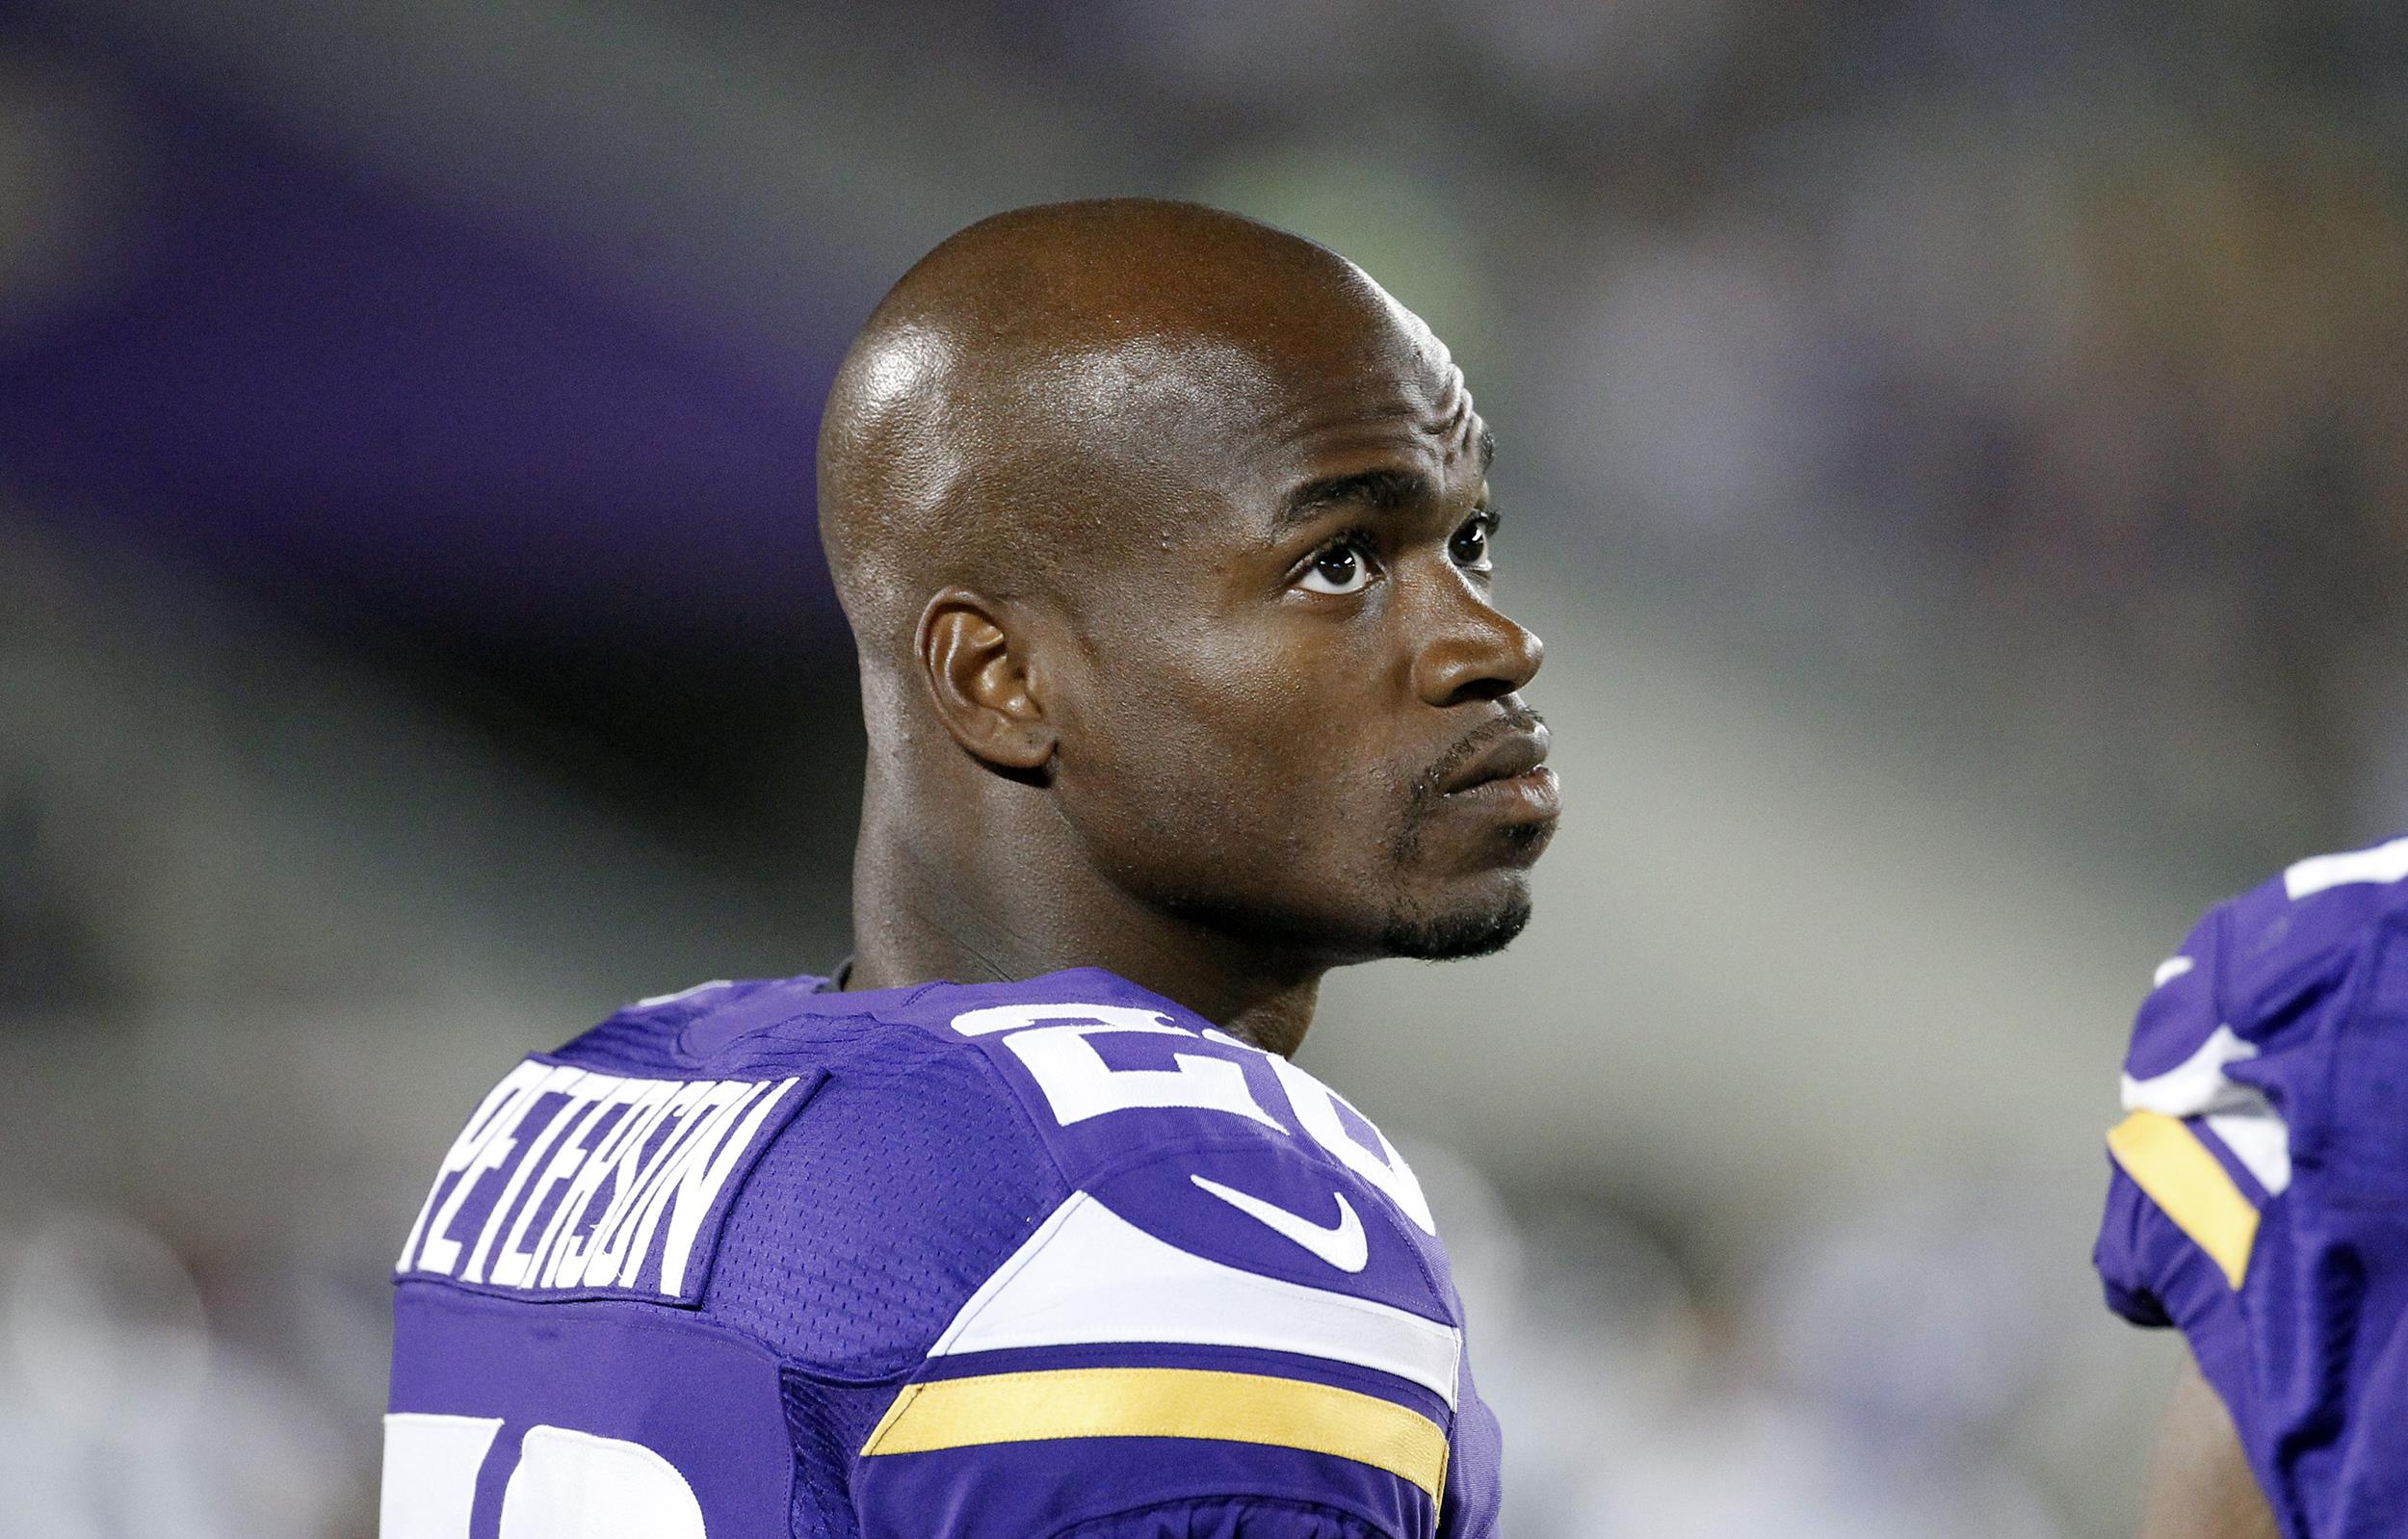 Adrian Peterson Signs a One Year Deal with the Washington Redskins